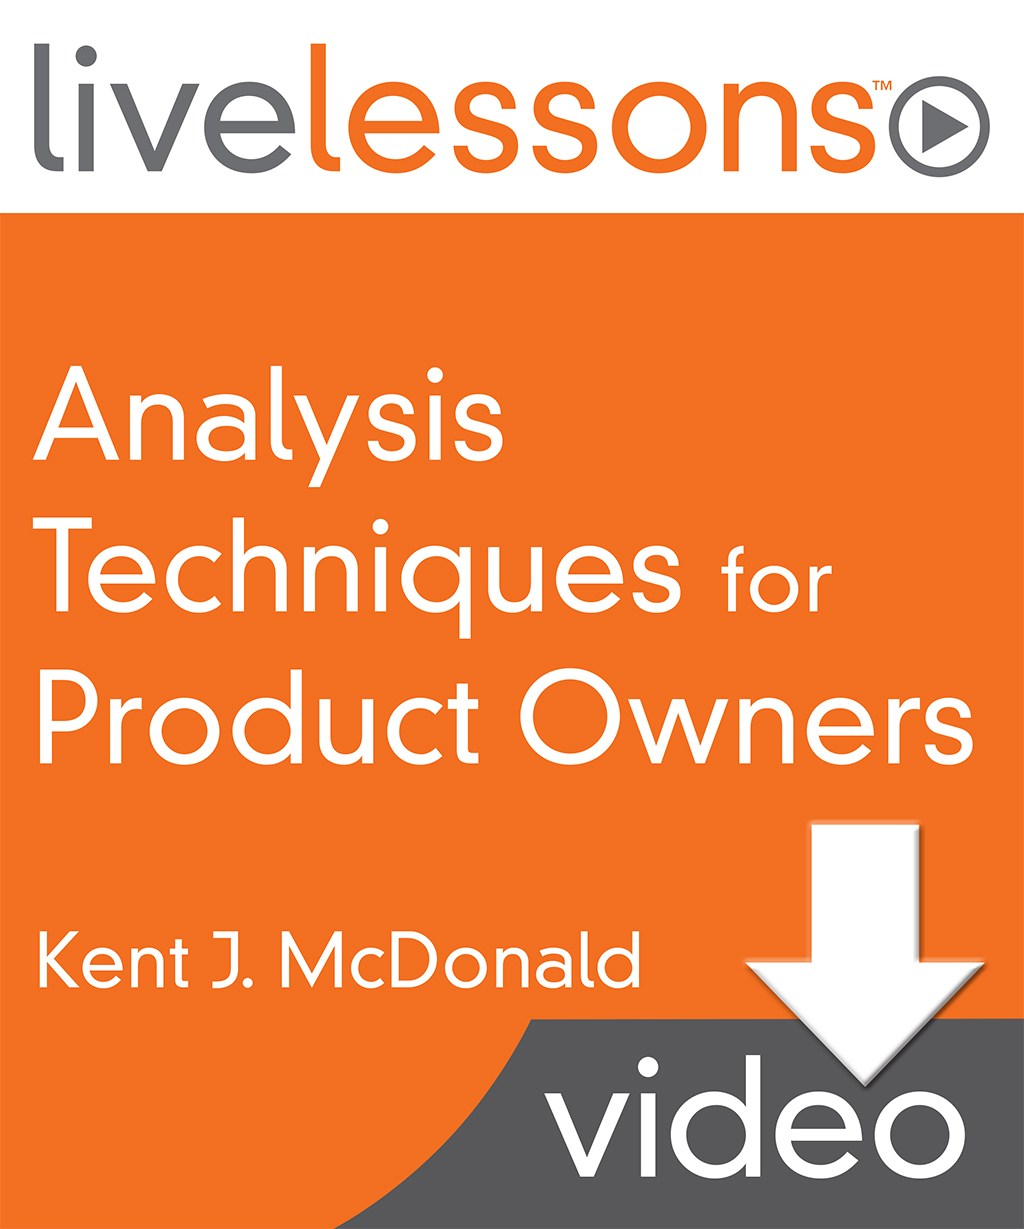 Analysis Techniques for Product Owners